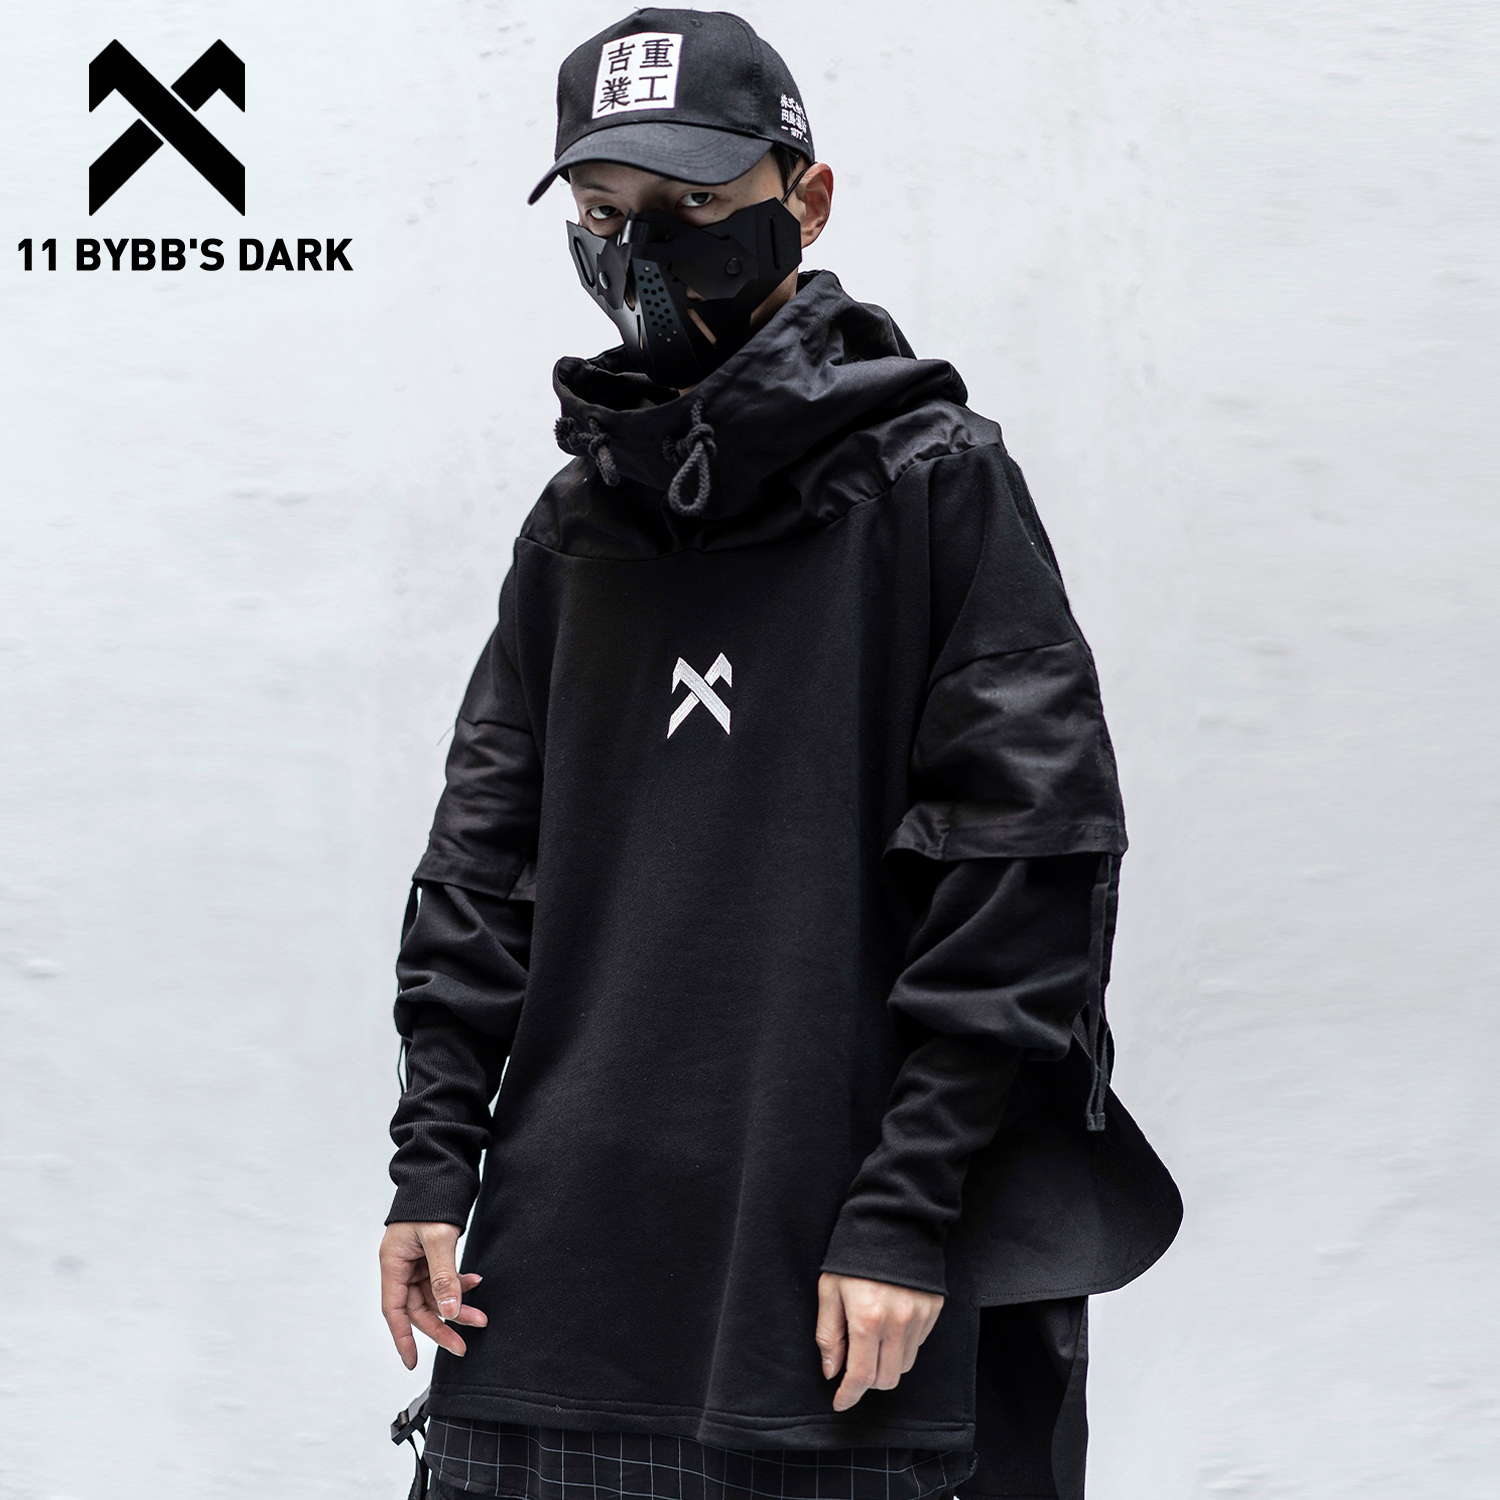 11 BYBB'S DARK Japanese Patchwork Hoodies Men Hip Hop Embroideried Pullover Fake Two Techwear Hoodies Streetwear Darkwear Tops